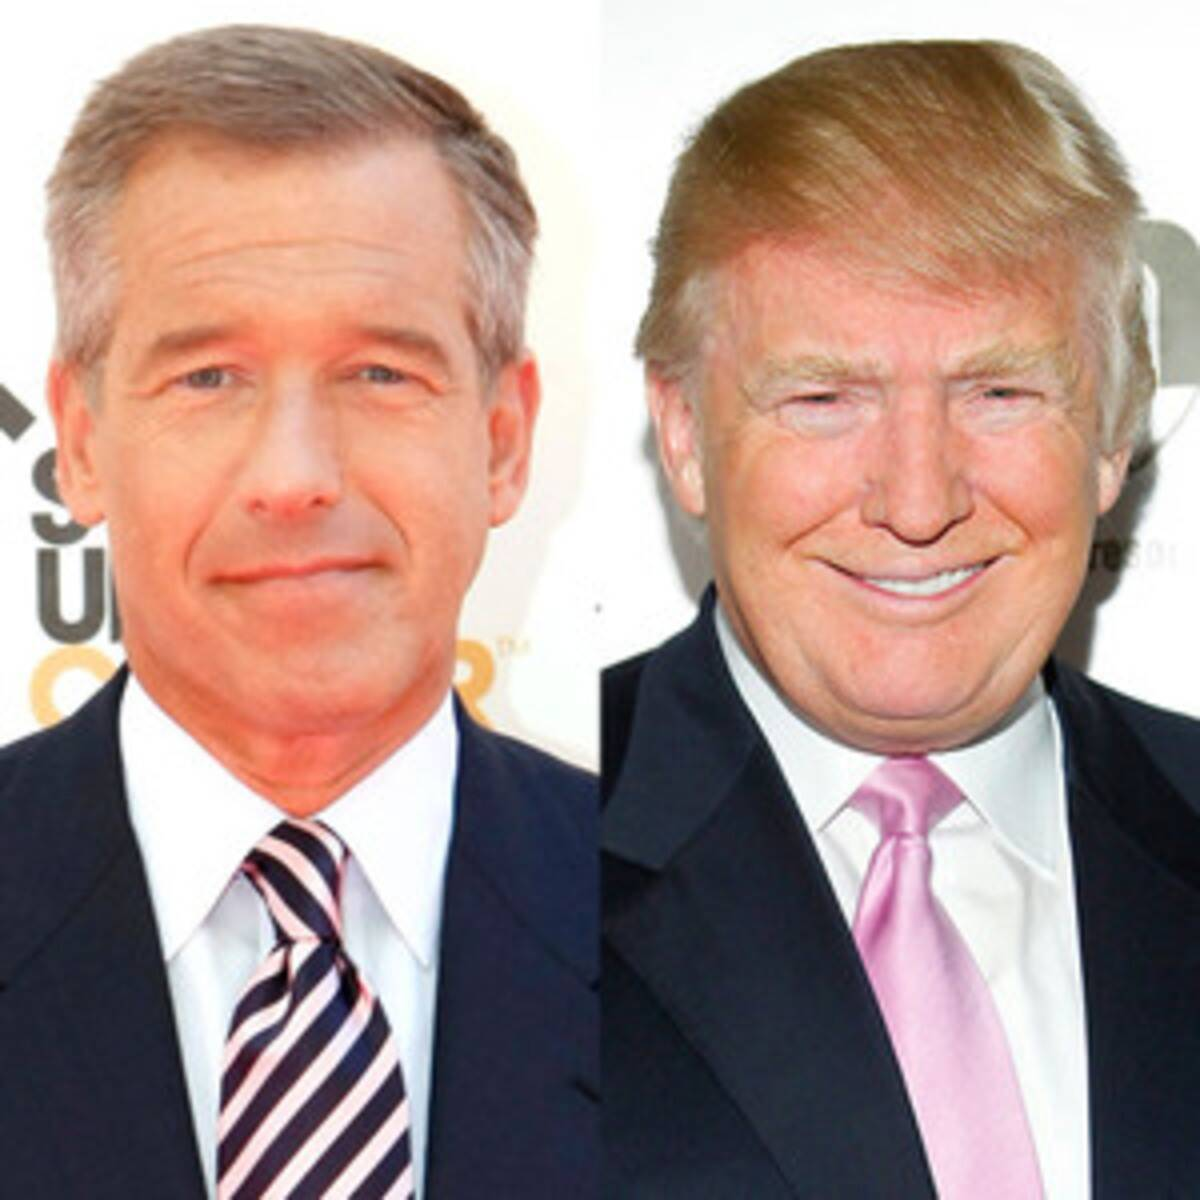 """donald-trump-drags-dumber-than-hell-anchor-brian-williams-amid-the-pandemic-and-social-media-is-not-having-it"""